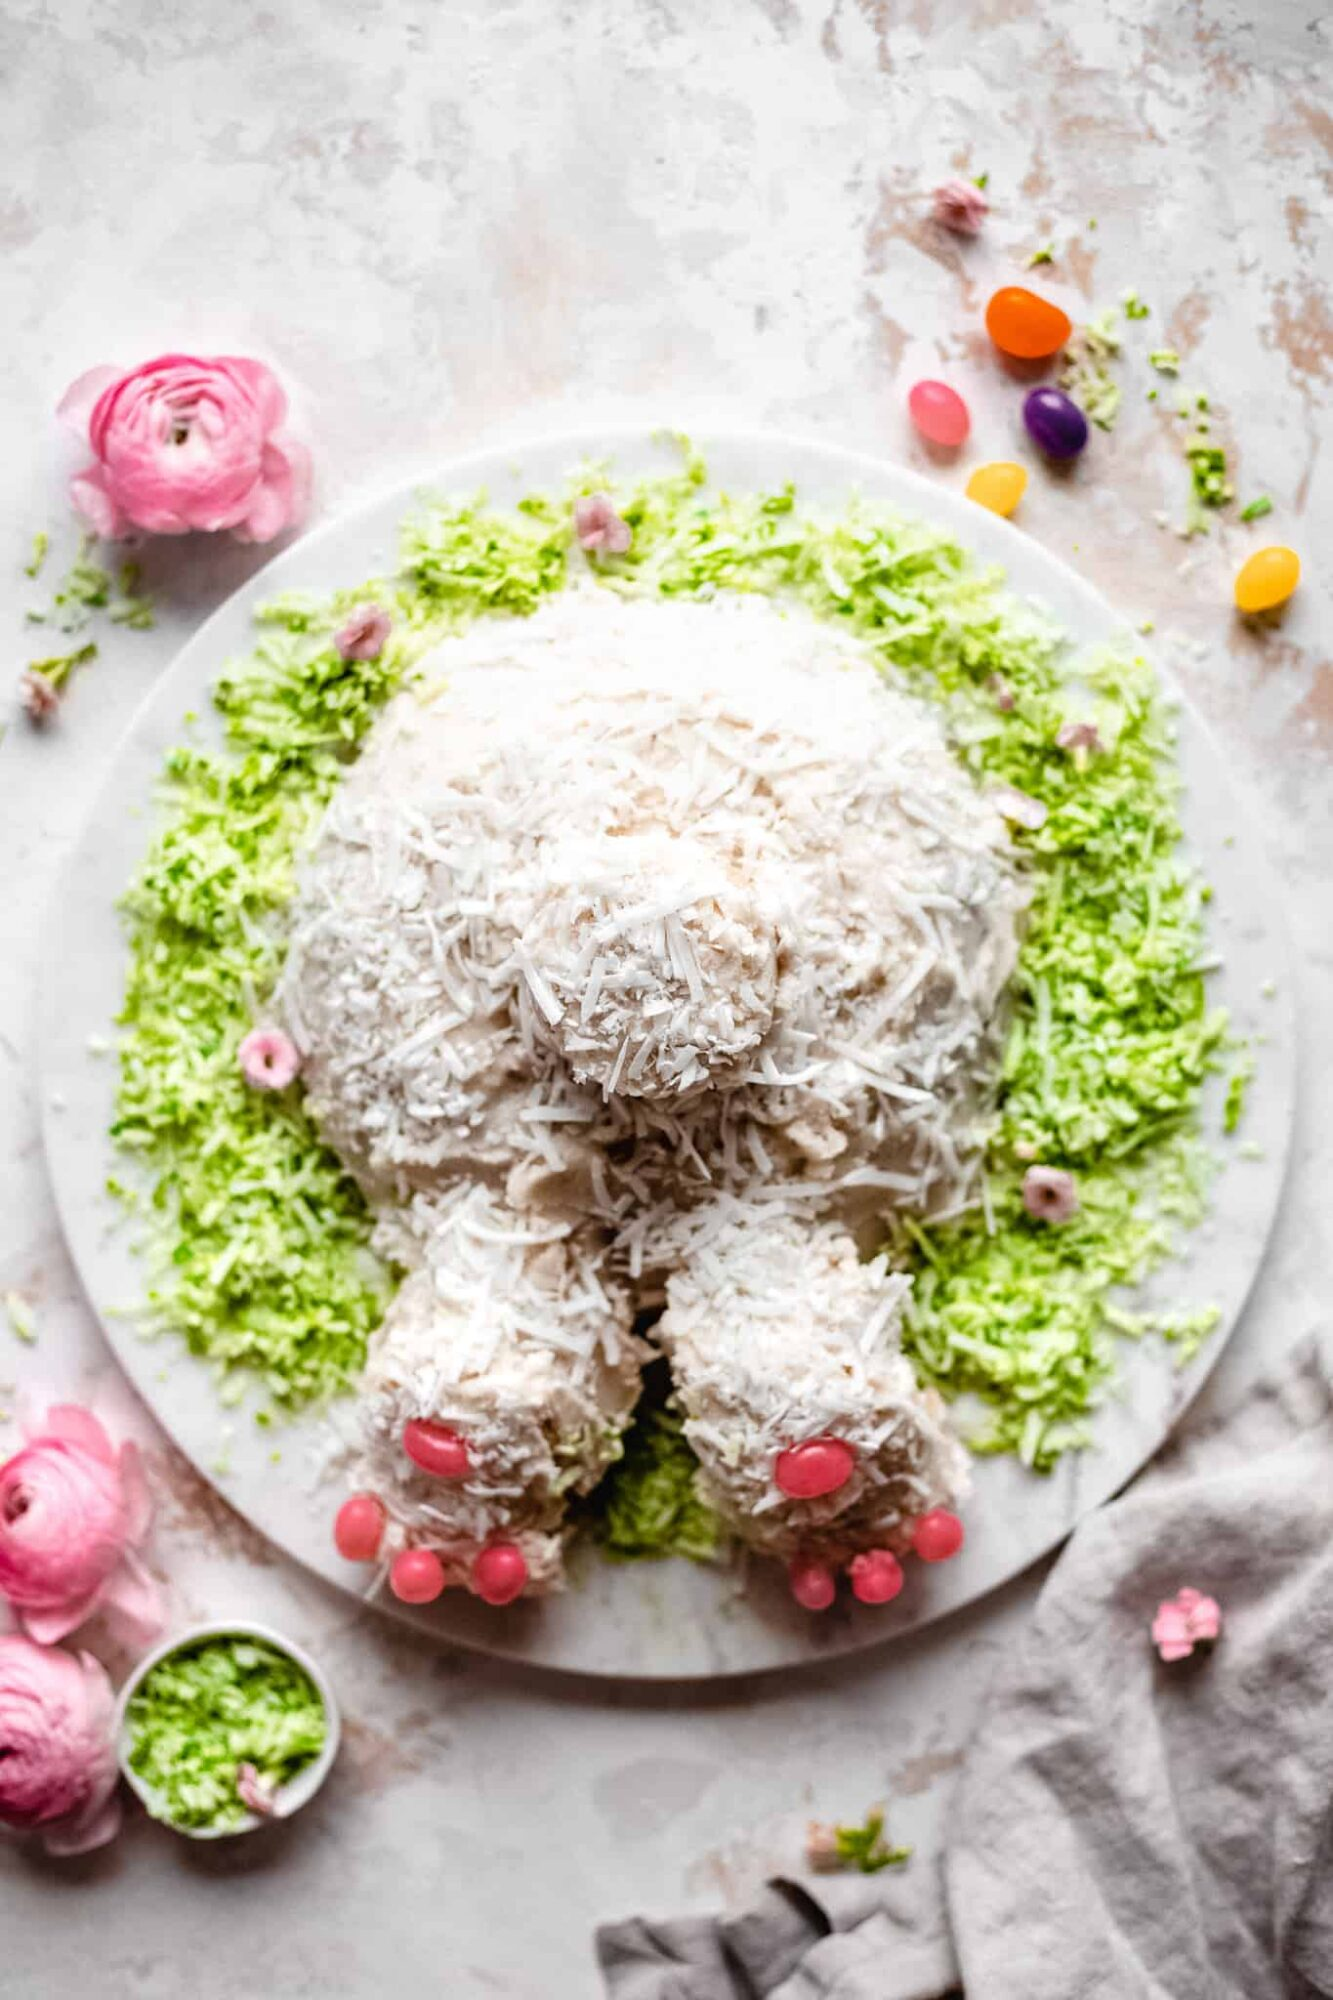 Bunny butt cake on a plate